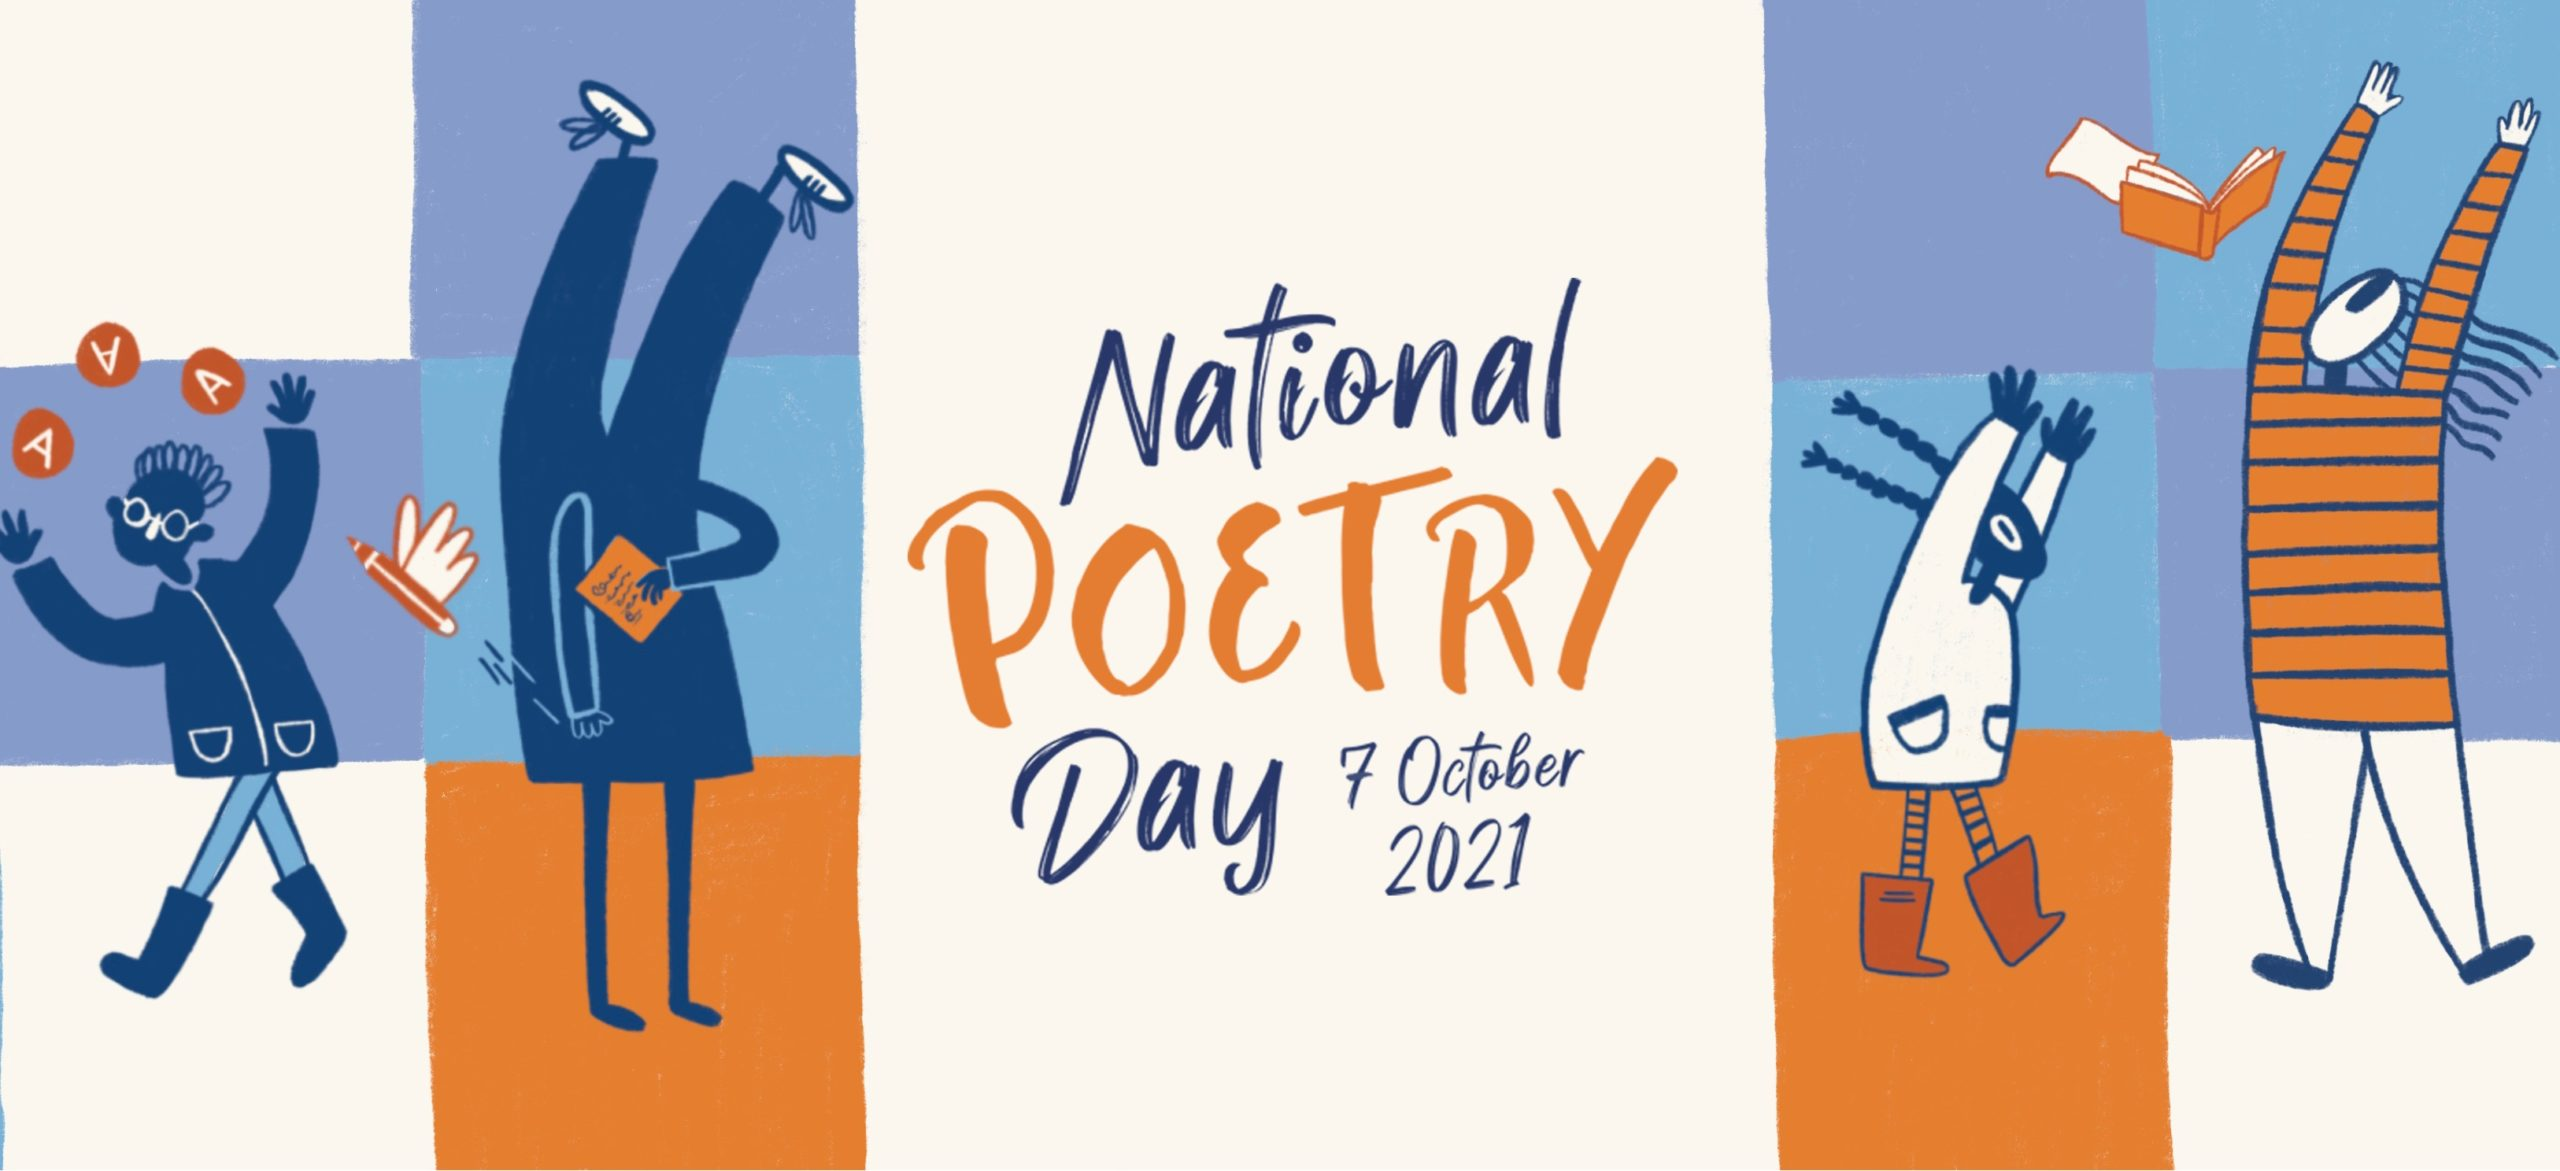 National Poetry Day 2021 banner: blue, cream and orange squares with drawn characters standing upside down, juggling and waving at us. 7 October 2021